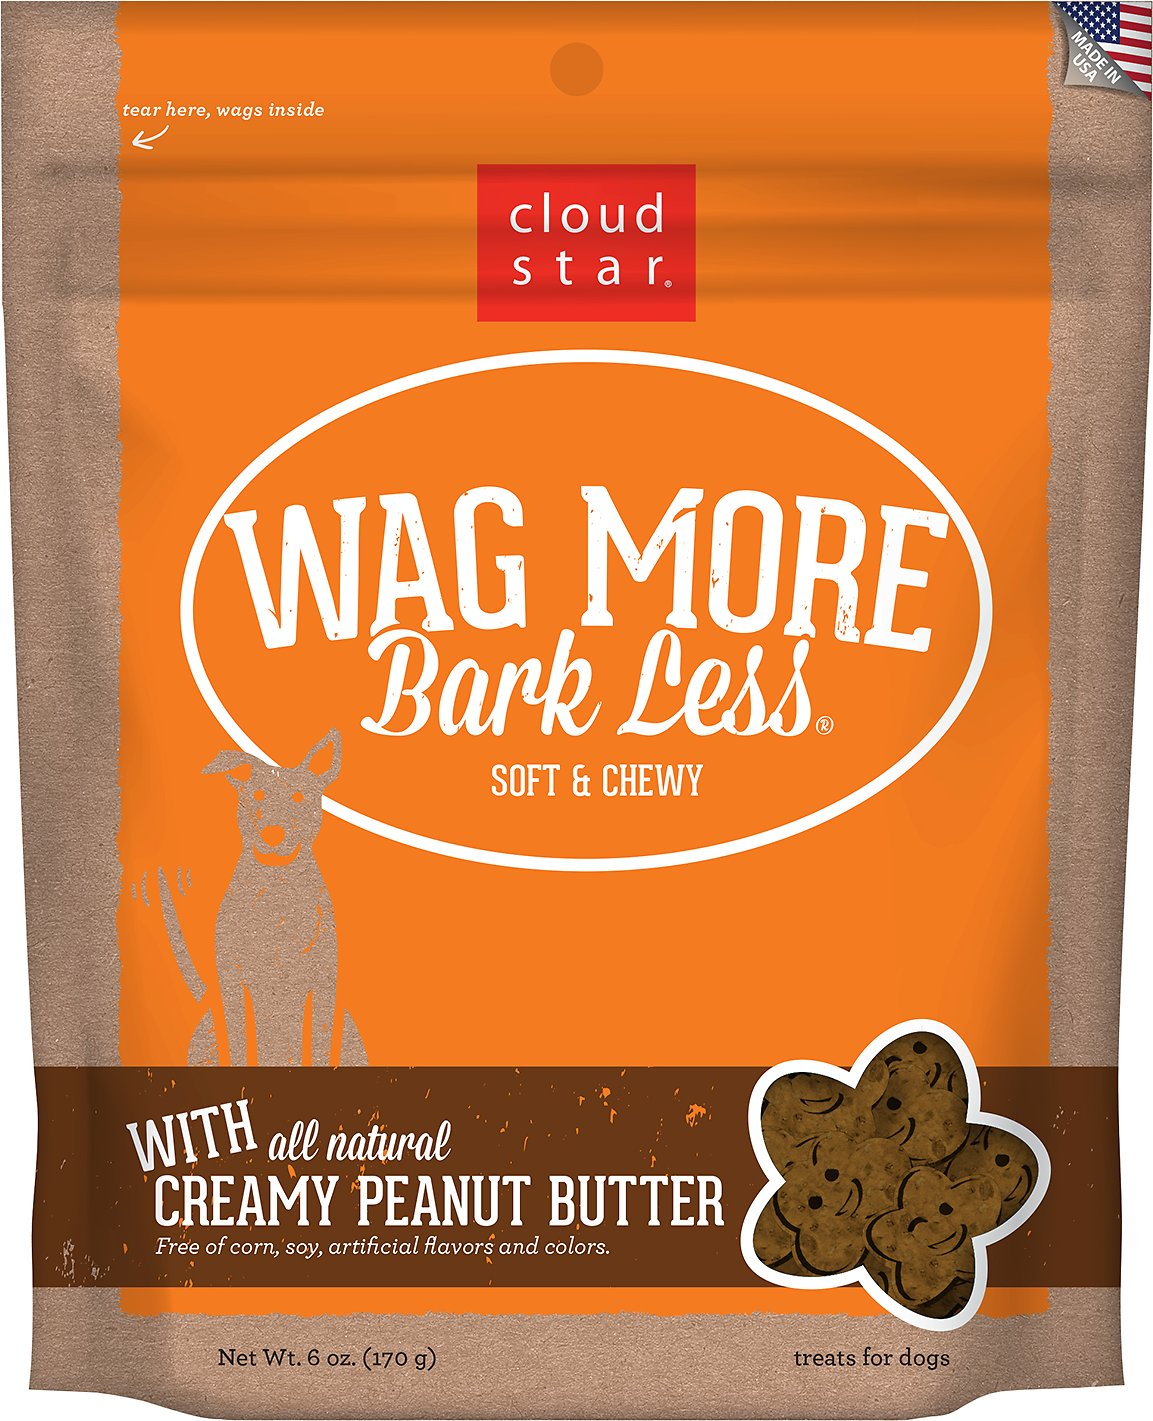 Cloud Star Wag More Bark Less Soft & Chewy with Creamy Peanut Butter Dog Treats, 6-oz bag